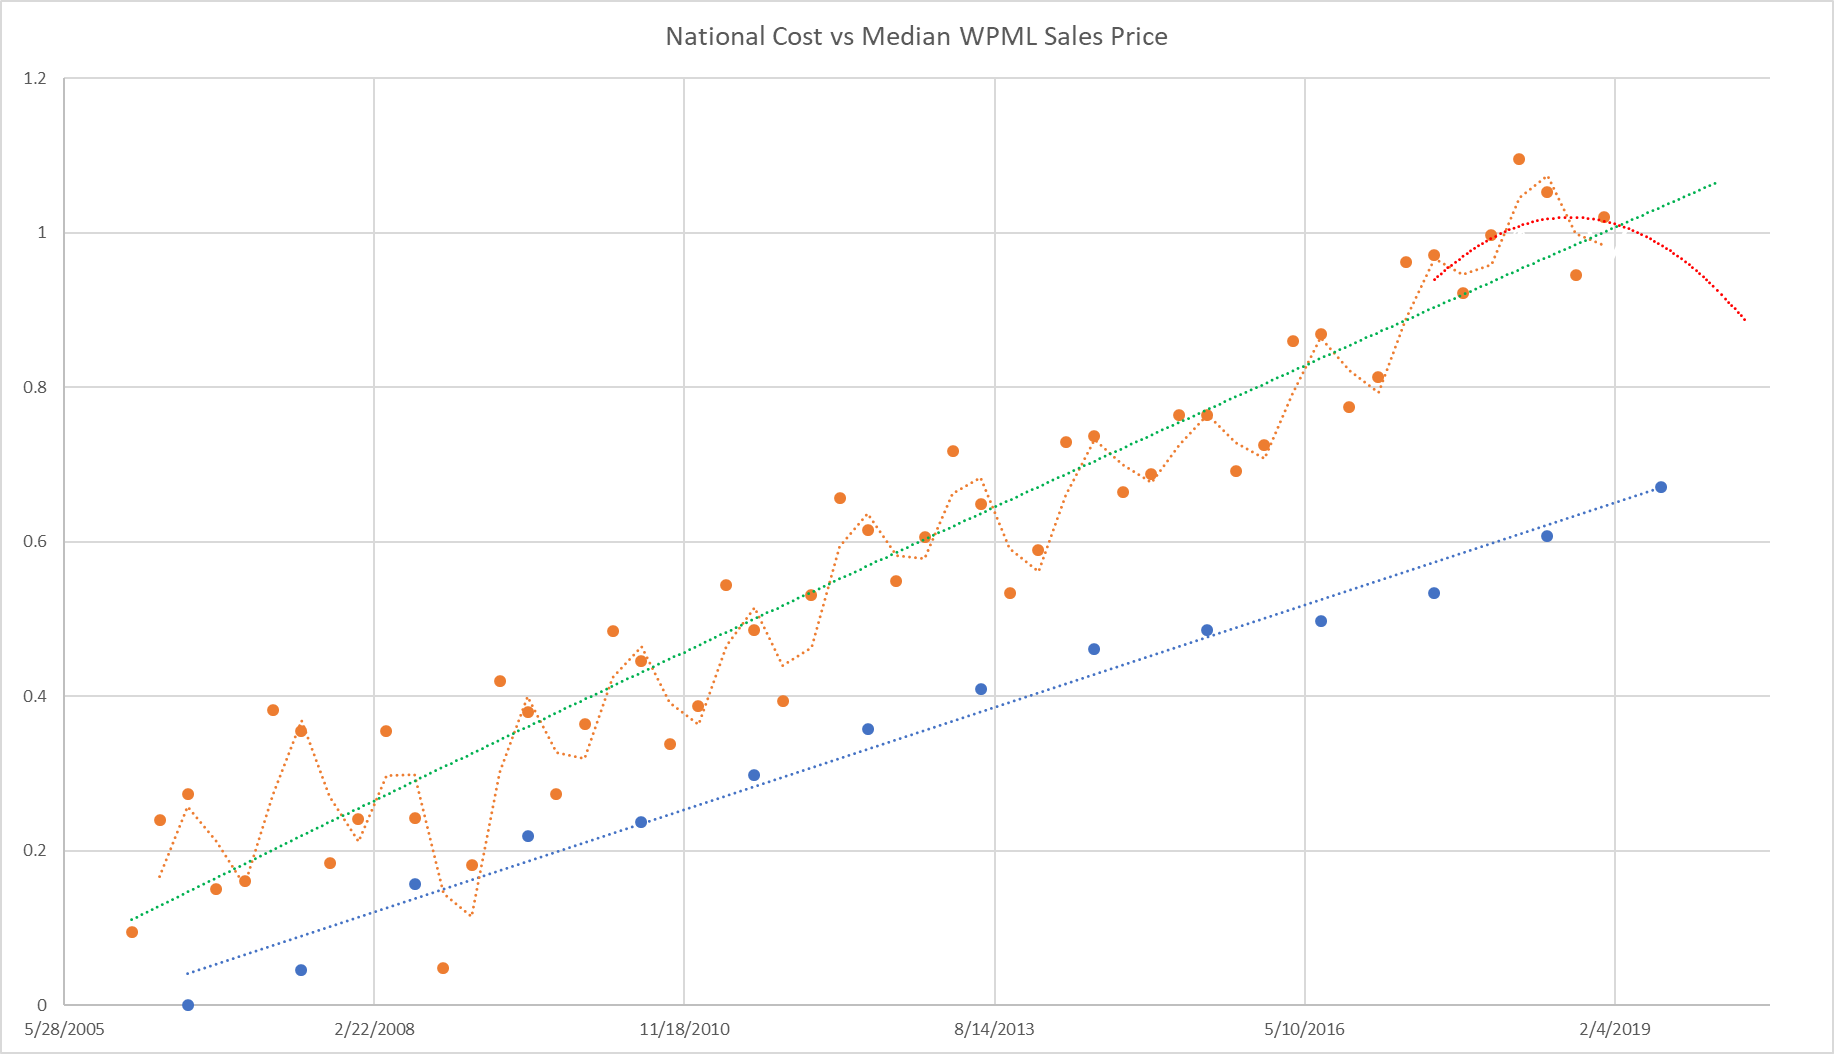 This is the trend line of the entire West Penn Multi List since 2006 (sadly the data available gets increasingly unreliable further back in time) compared to national builder trends. We see a similar divergence in the local data from the trend that is seen in the national data, and a similar pullback in 2008. The good news: if the national trend remains flat, our local market will likely see little impact. If the national trend moves downward, like in 2008, our declines will likely be far shorter and less deep (again, because prices have not been inflated by speculation).